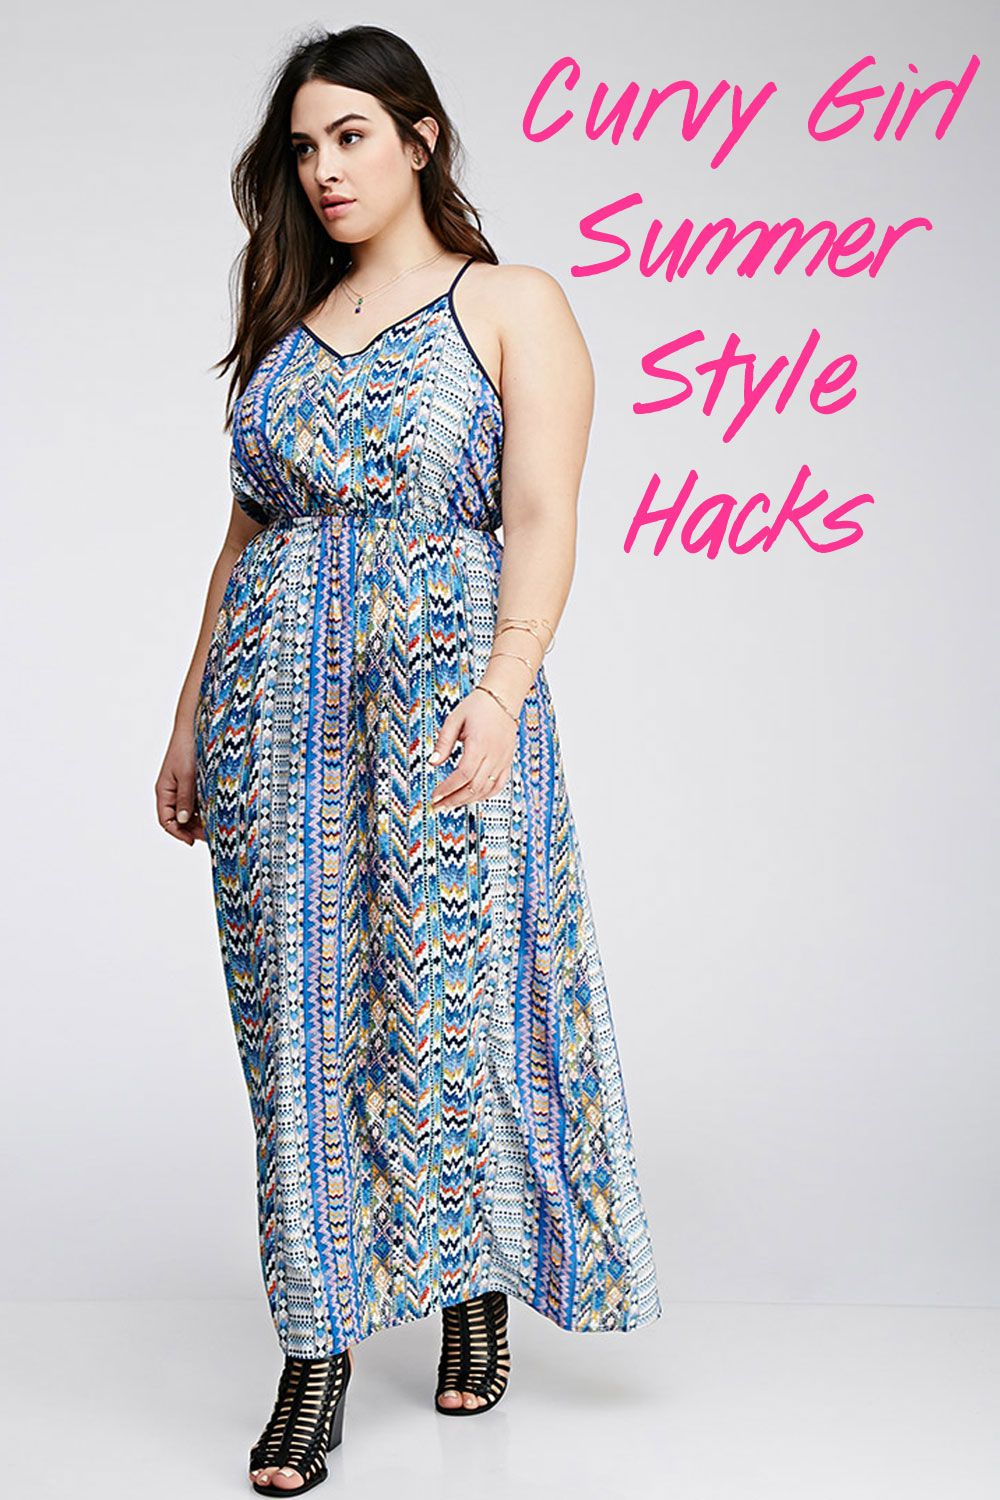 a4516172a0 9 Curvy Girl Fashion Hacks to Get You Through Summer